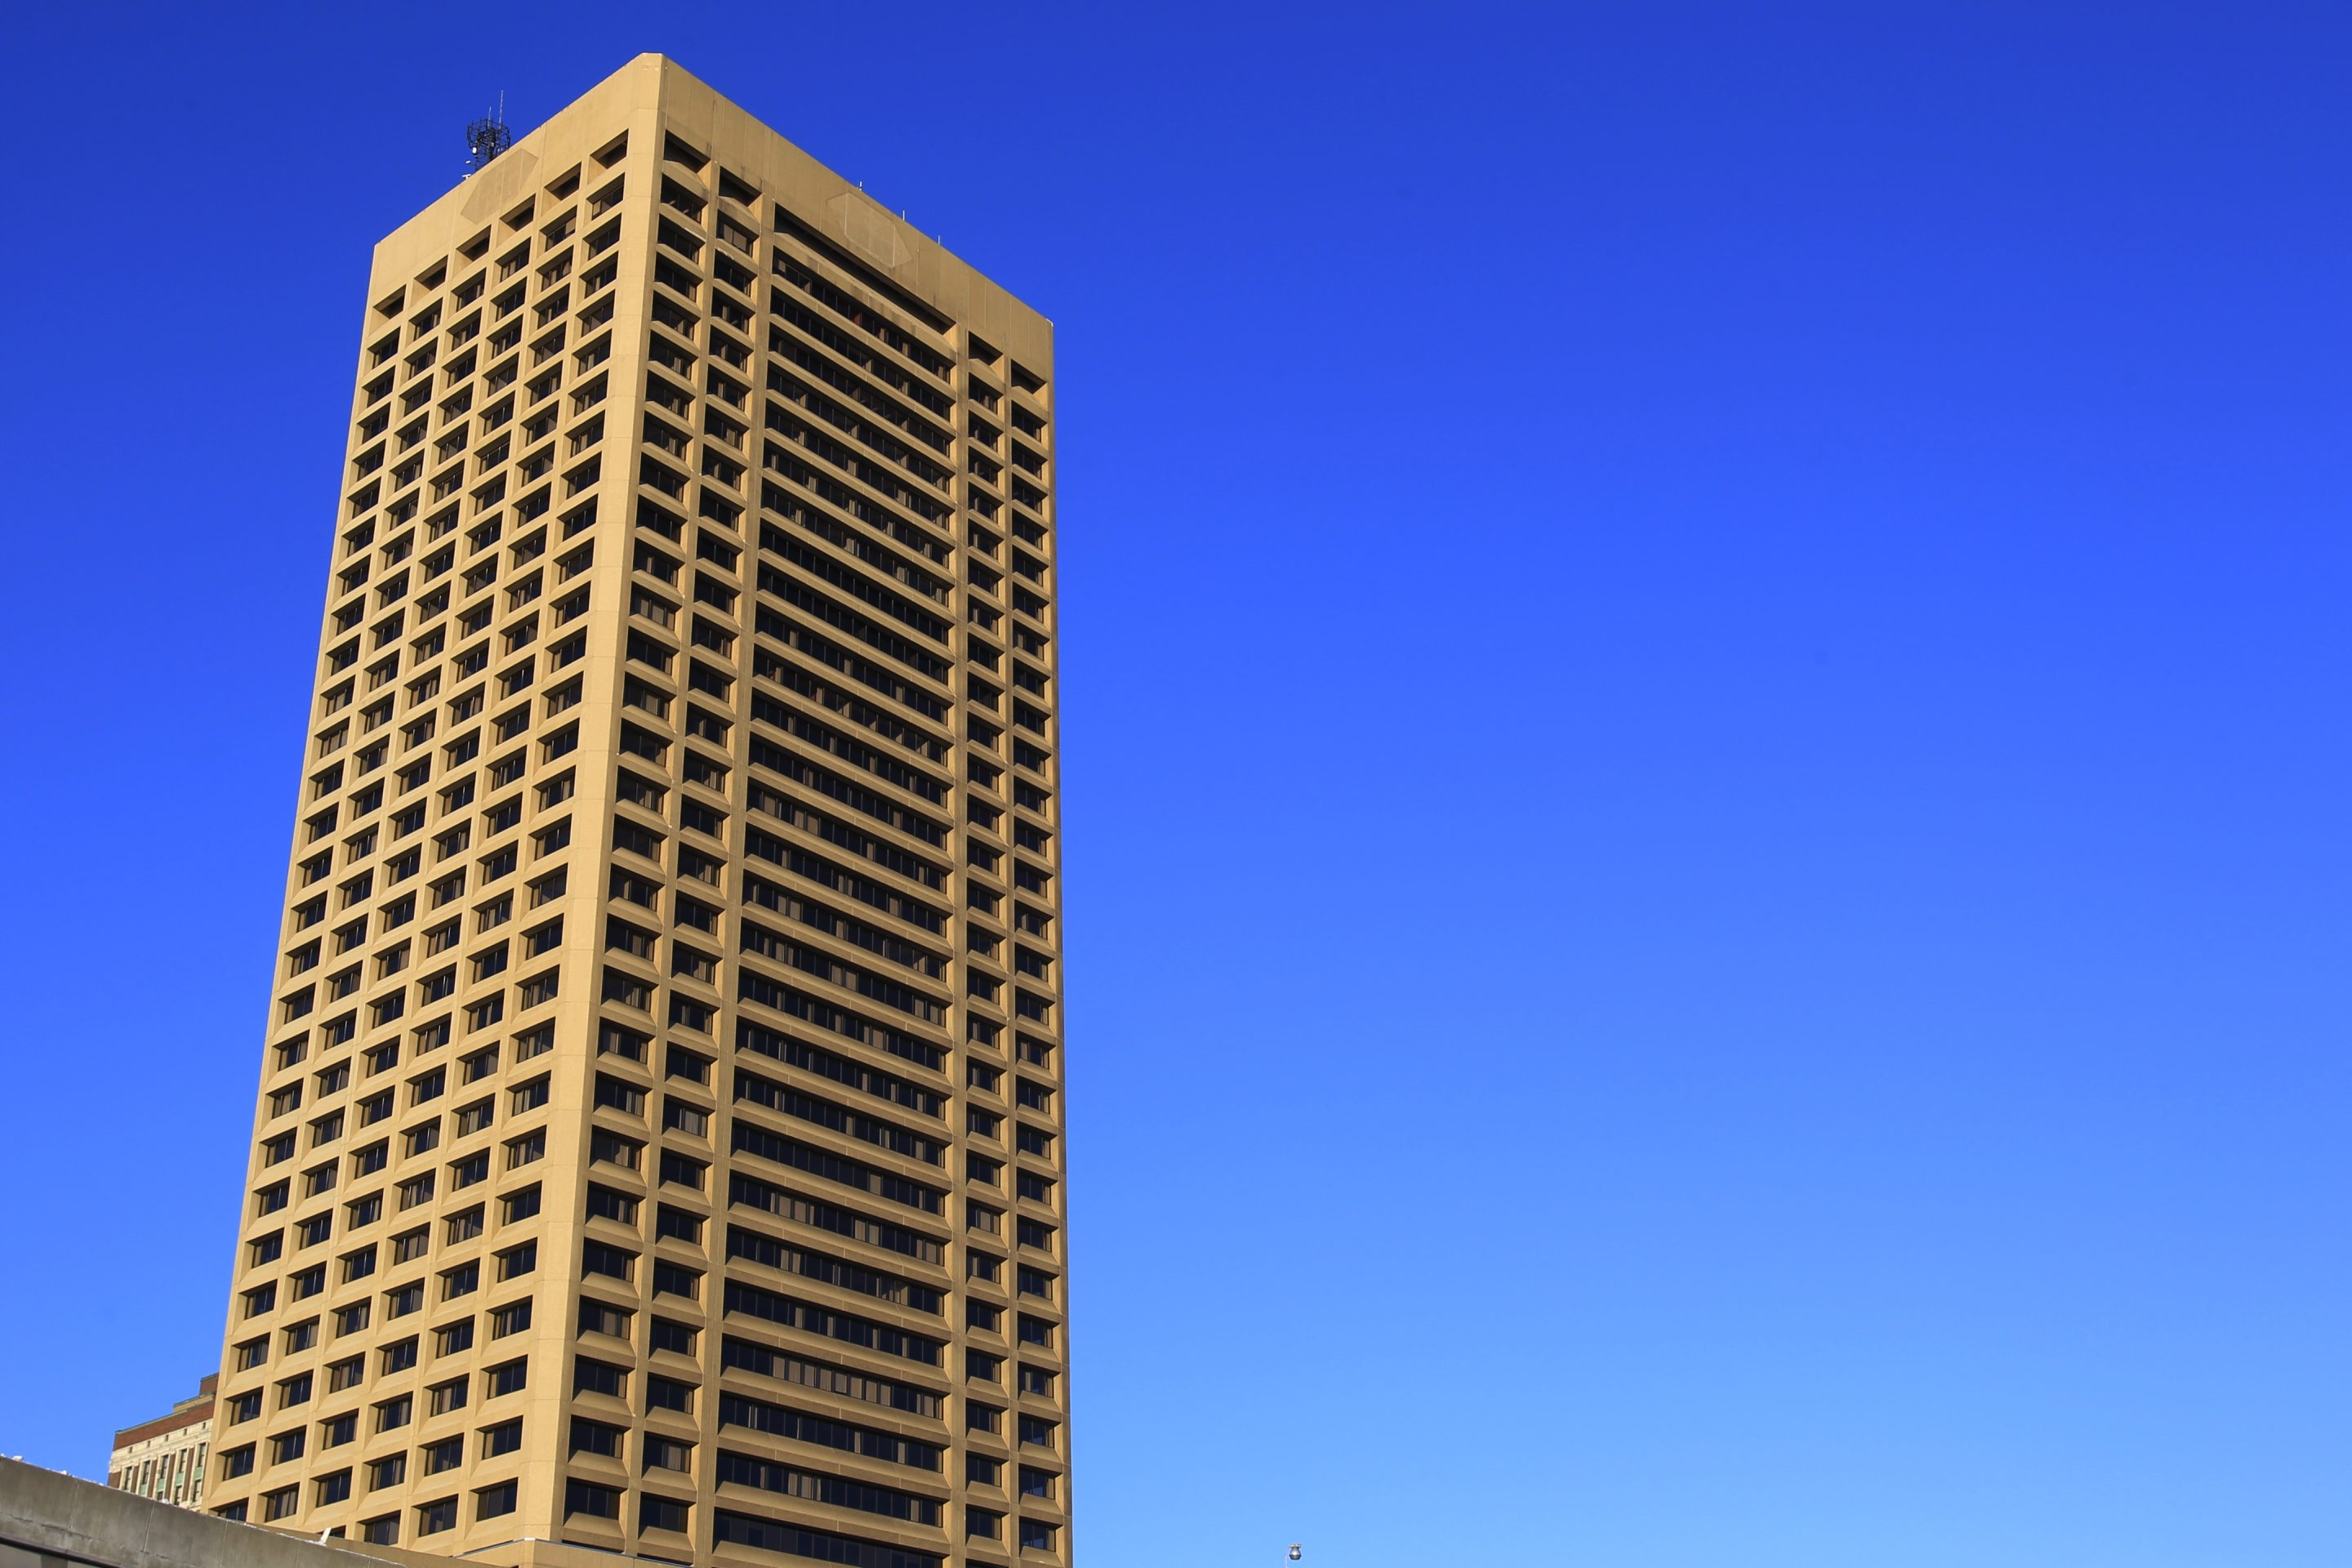 Still largely vacant and facing foreclosure, Seneca One Tower is gaining new tenants.